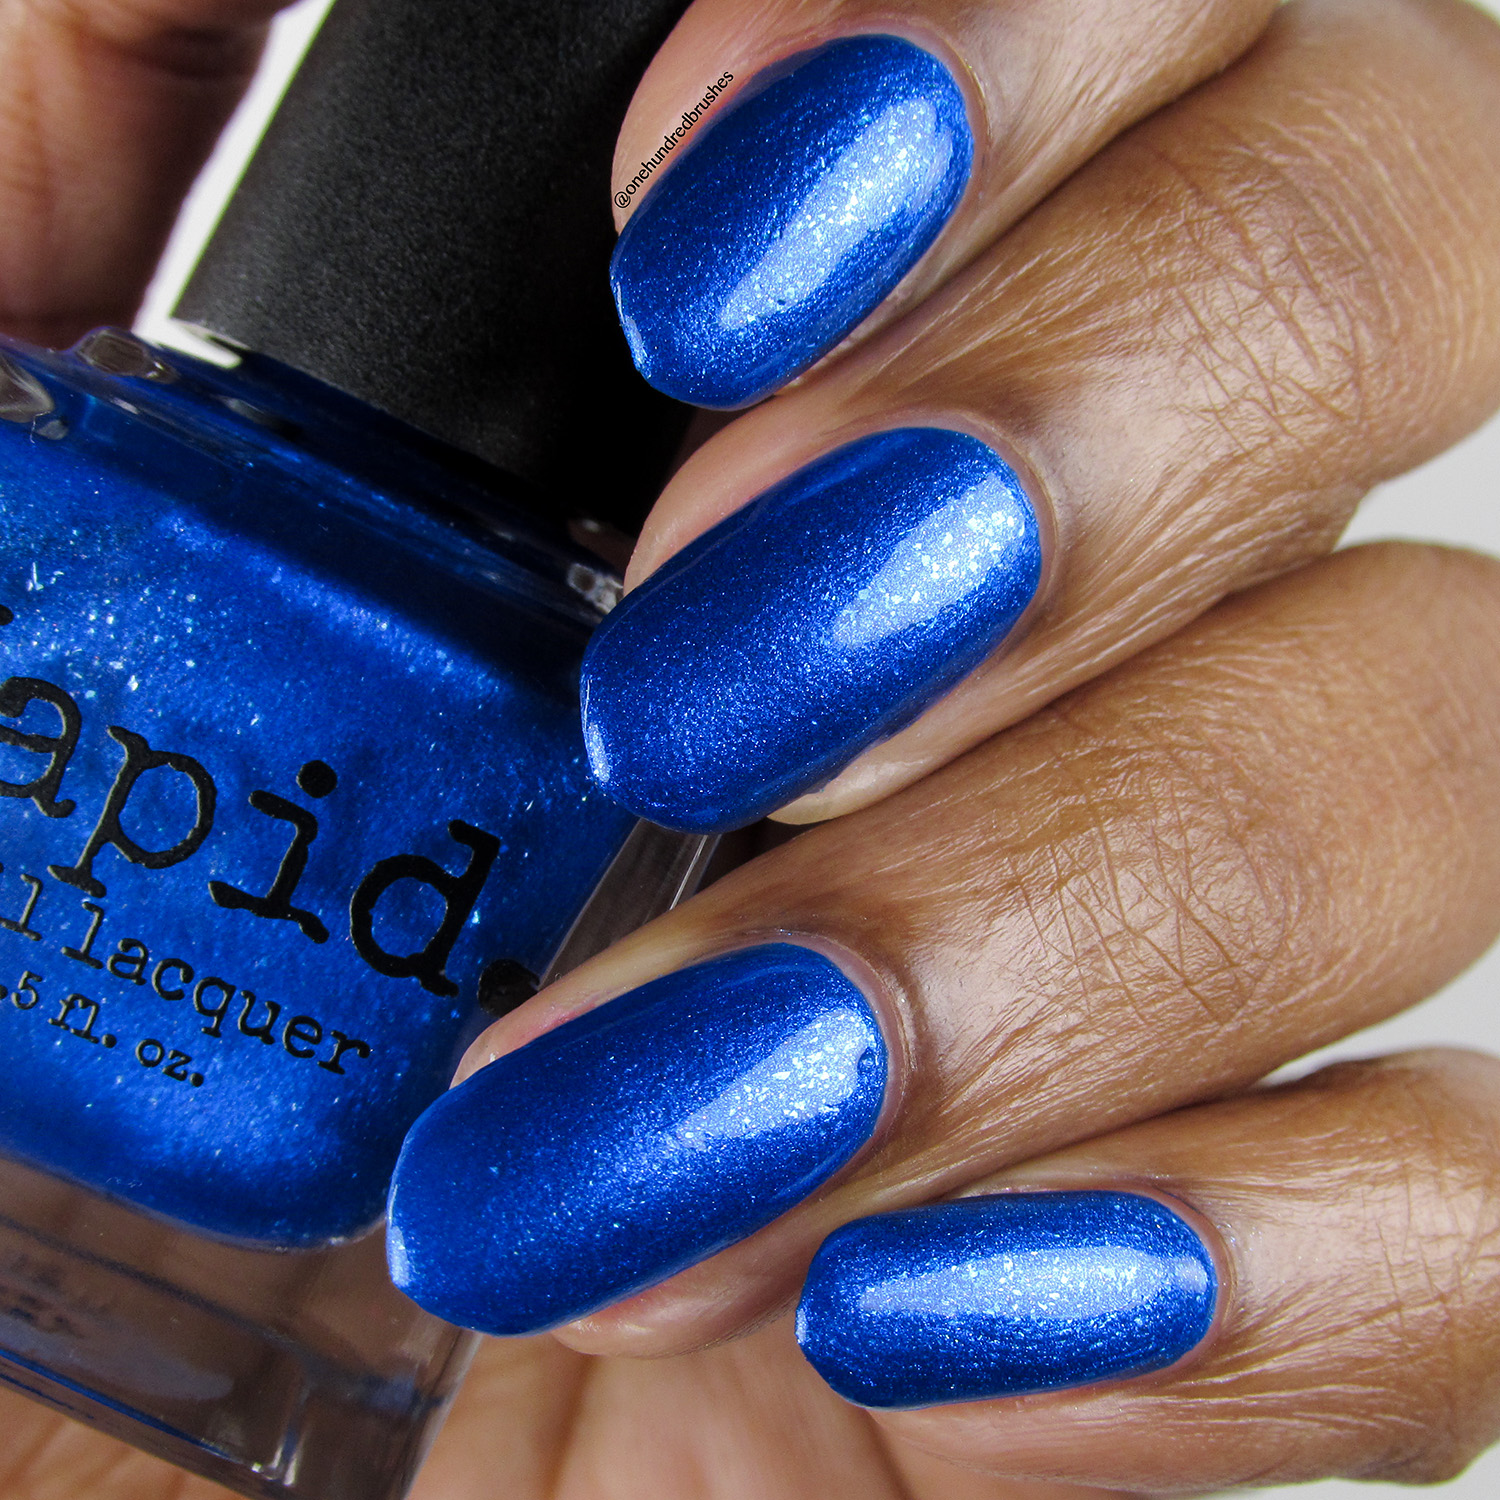 Trite - bottle - Vapid Lacquer - April 2018 - Blue polish - shimmer polish